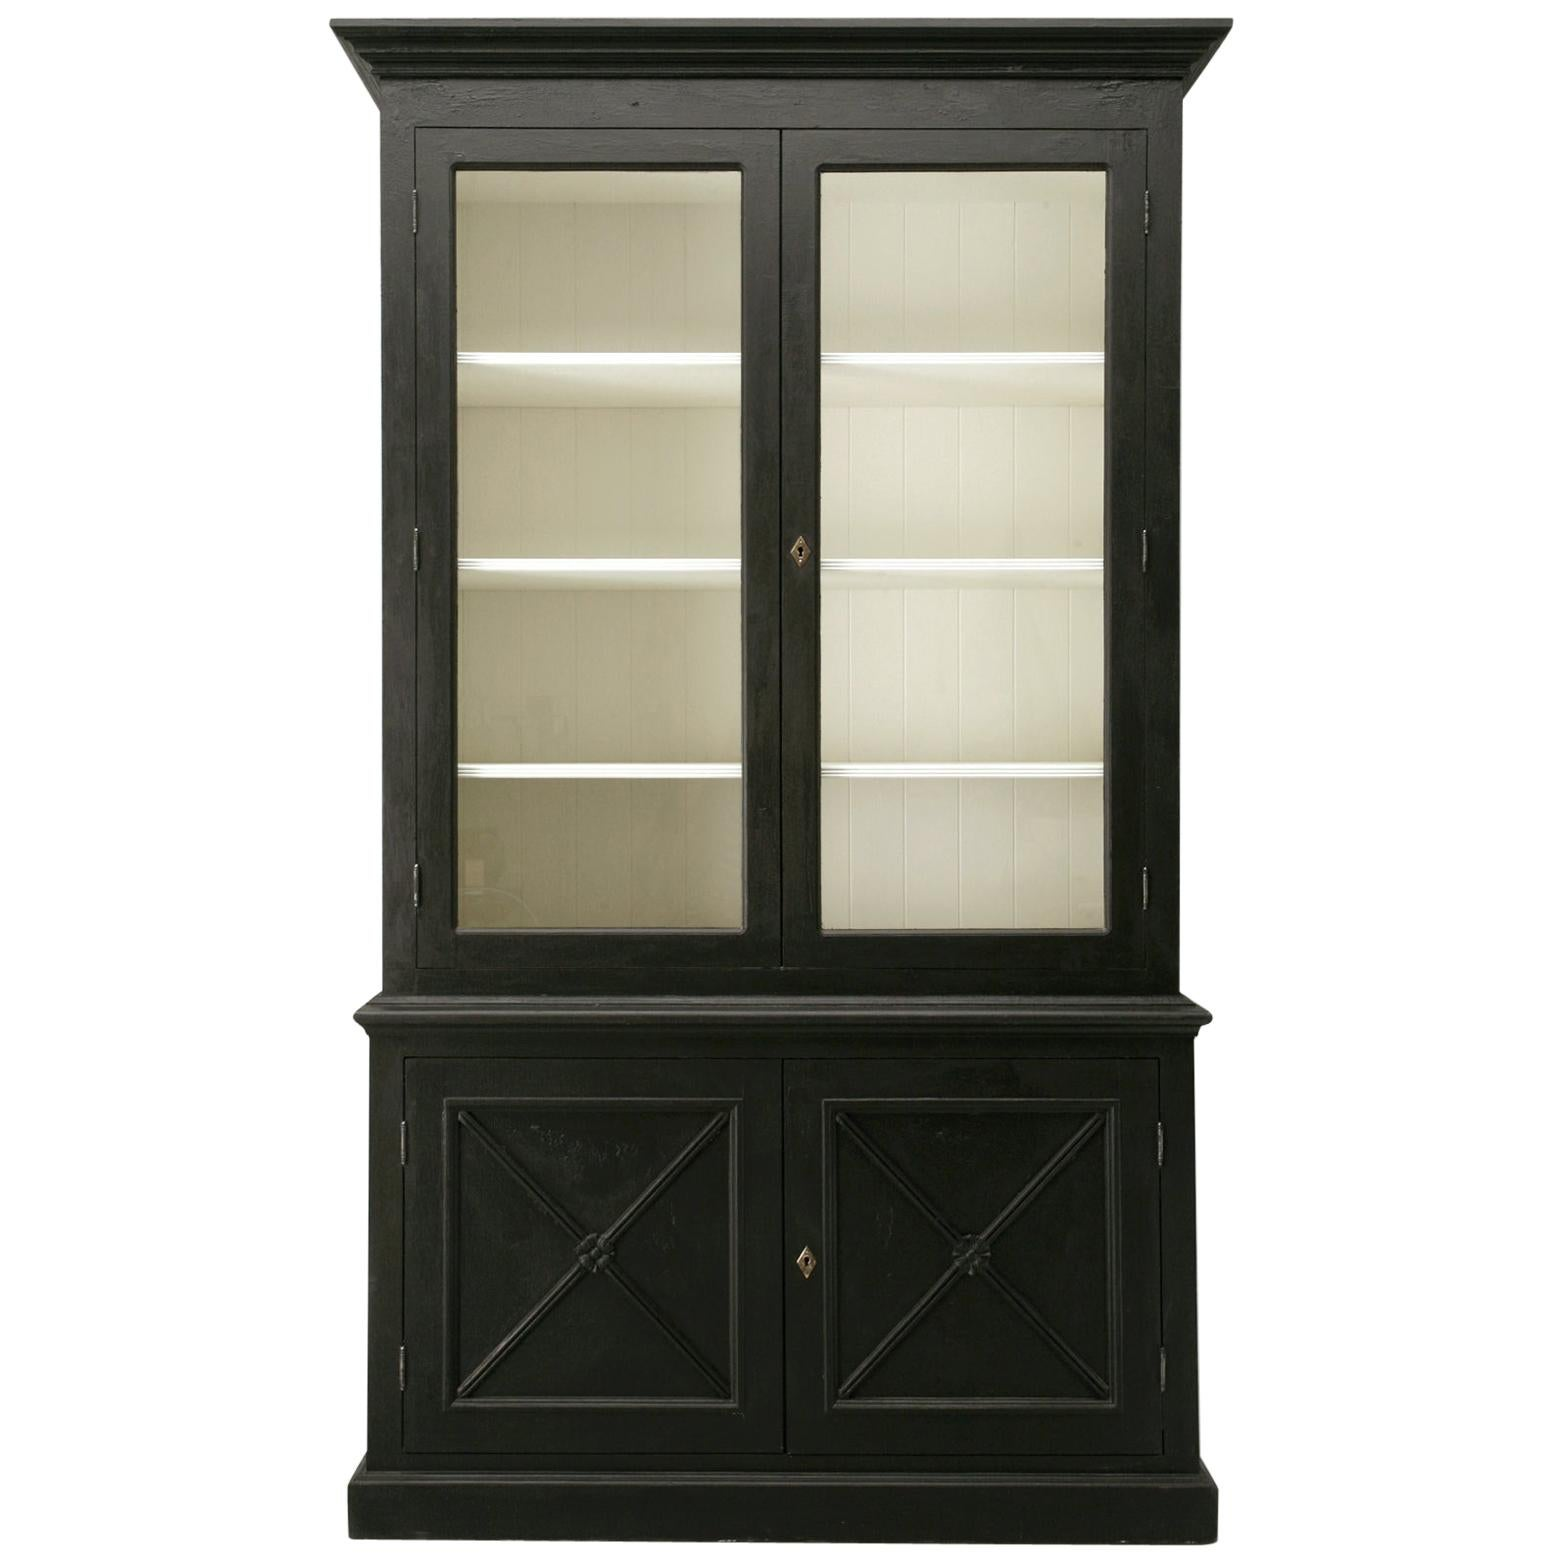 Custom Country French Painted Bookcase or Cabinet in Any Dimension or Finish